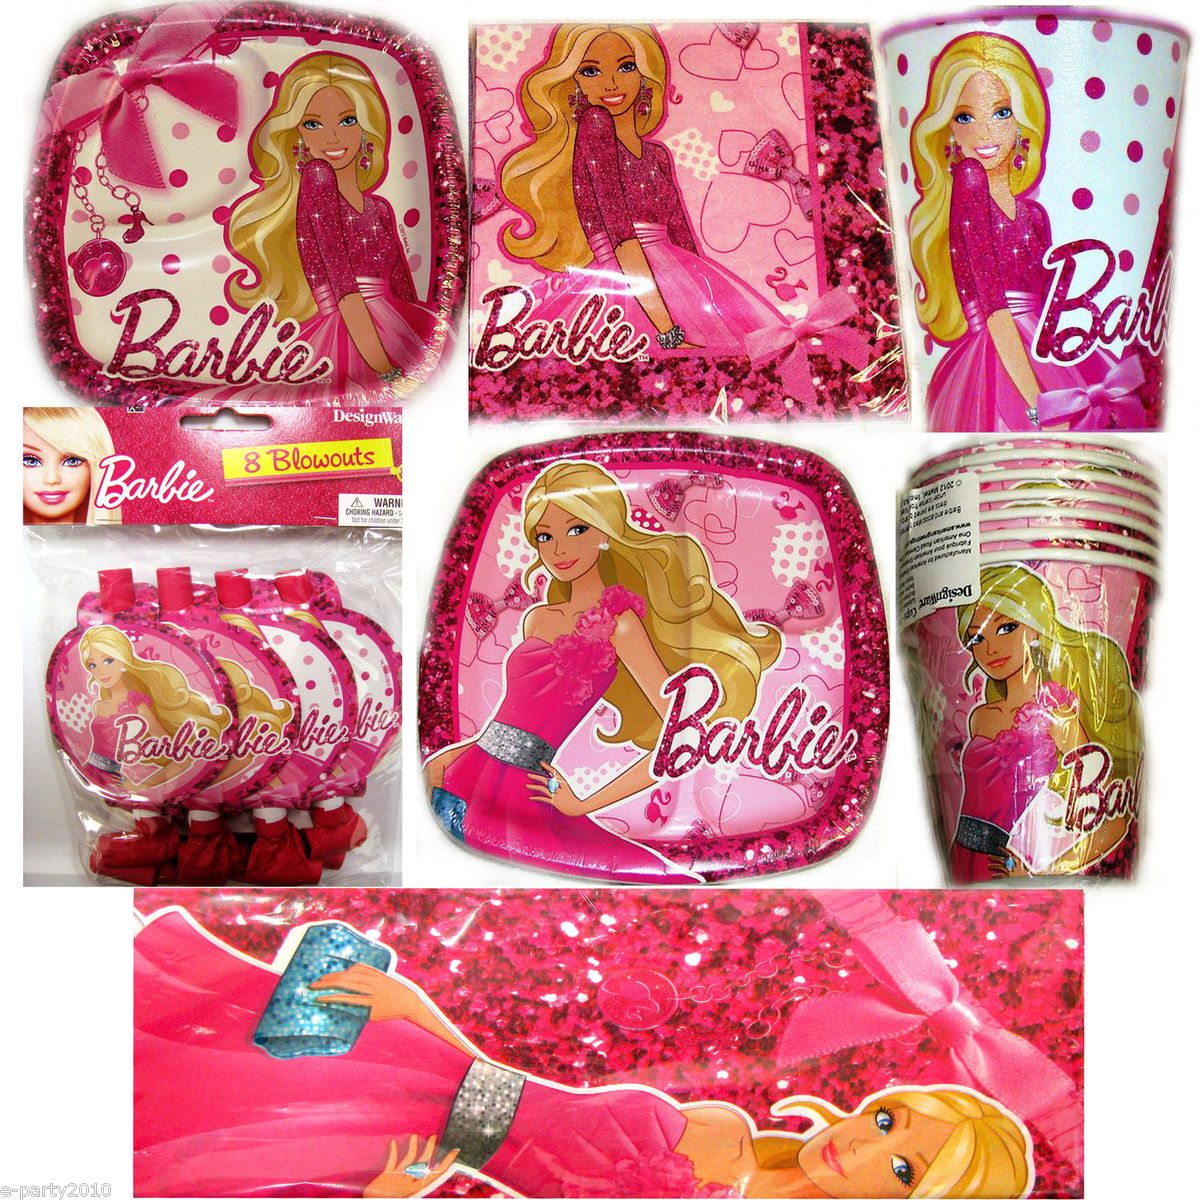 Barbie fashion fairytale birthday party supplies